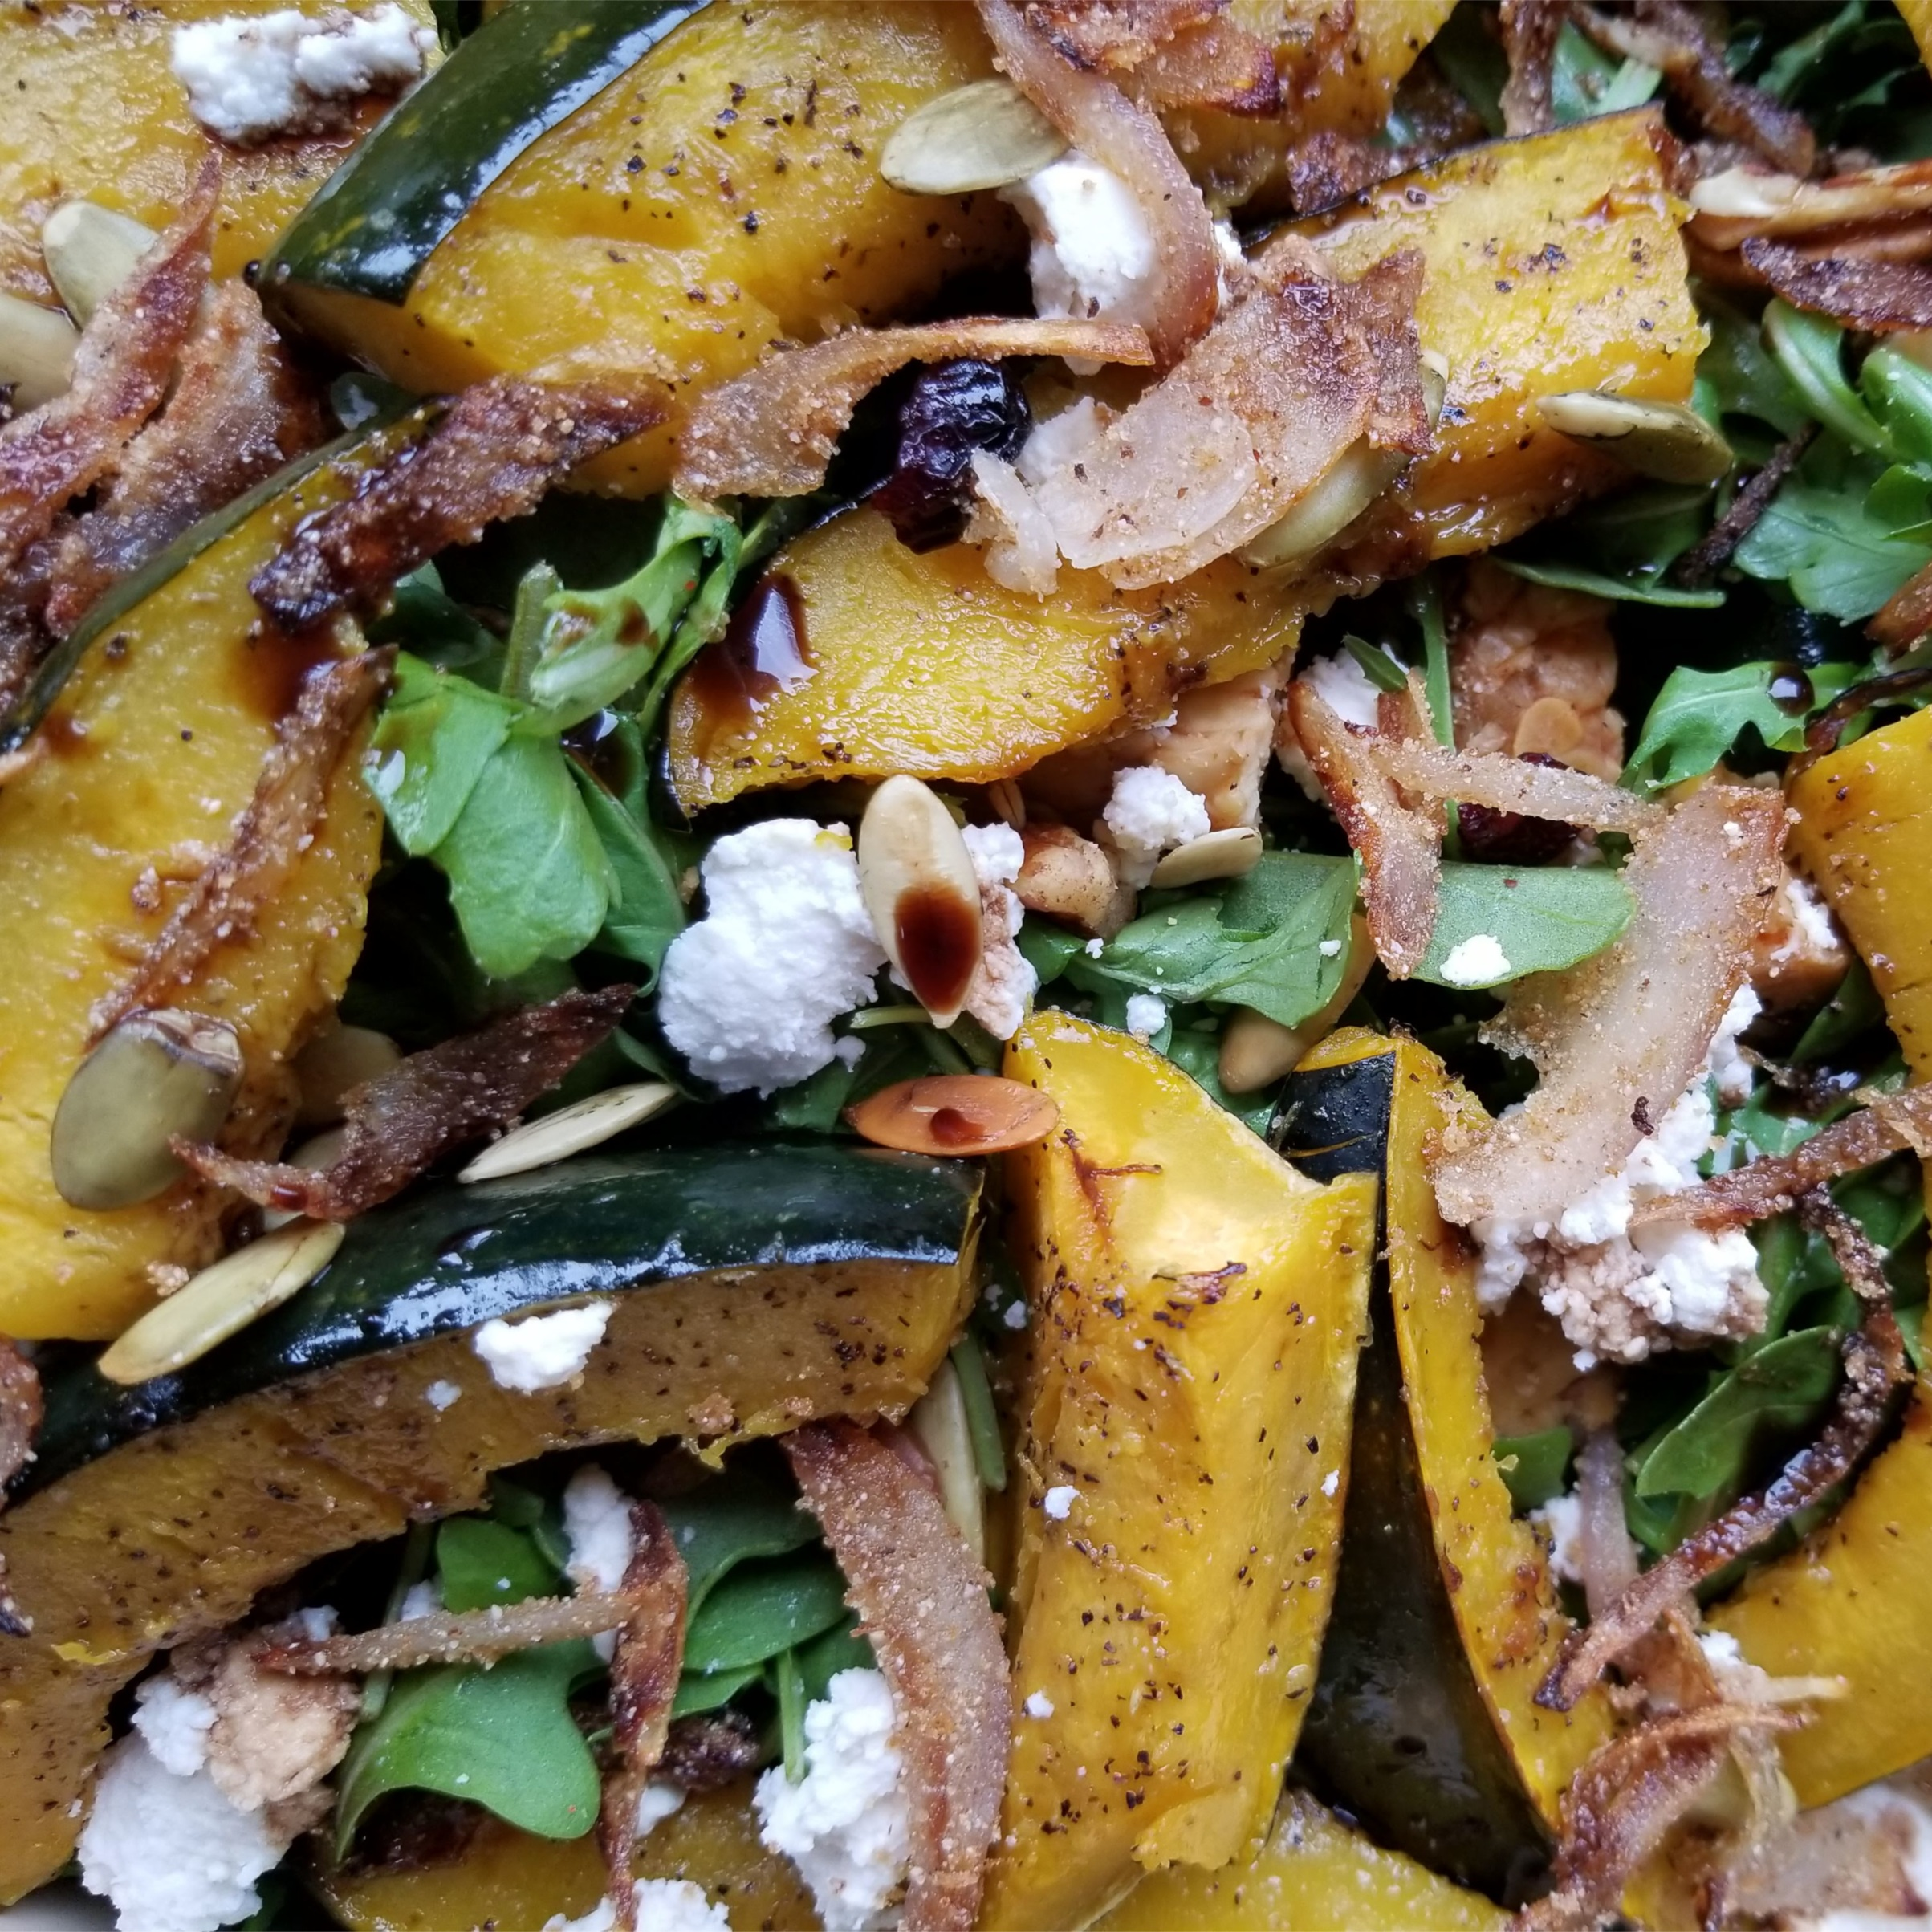 Roasted squash salad with crispy shallots and balsamic reduction  (vegan)